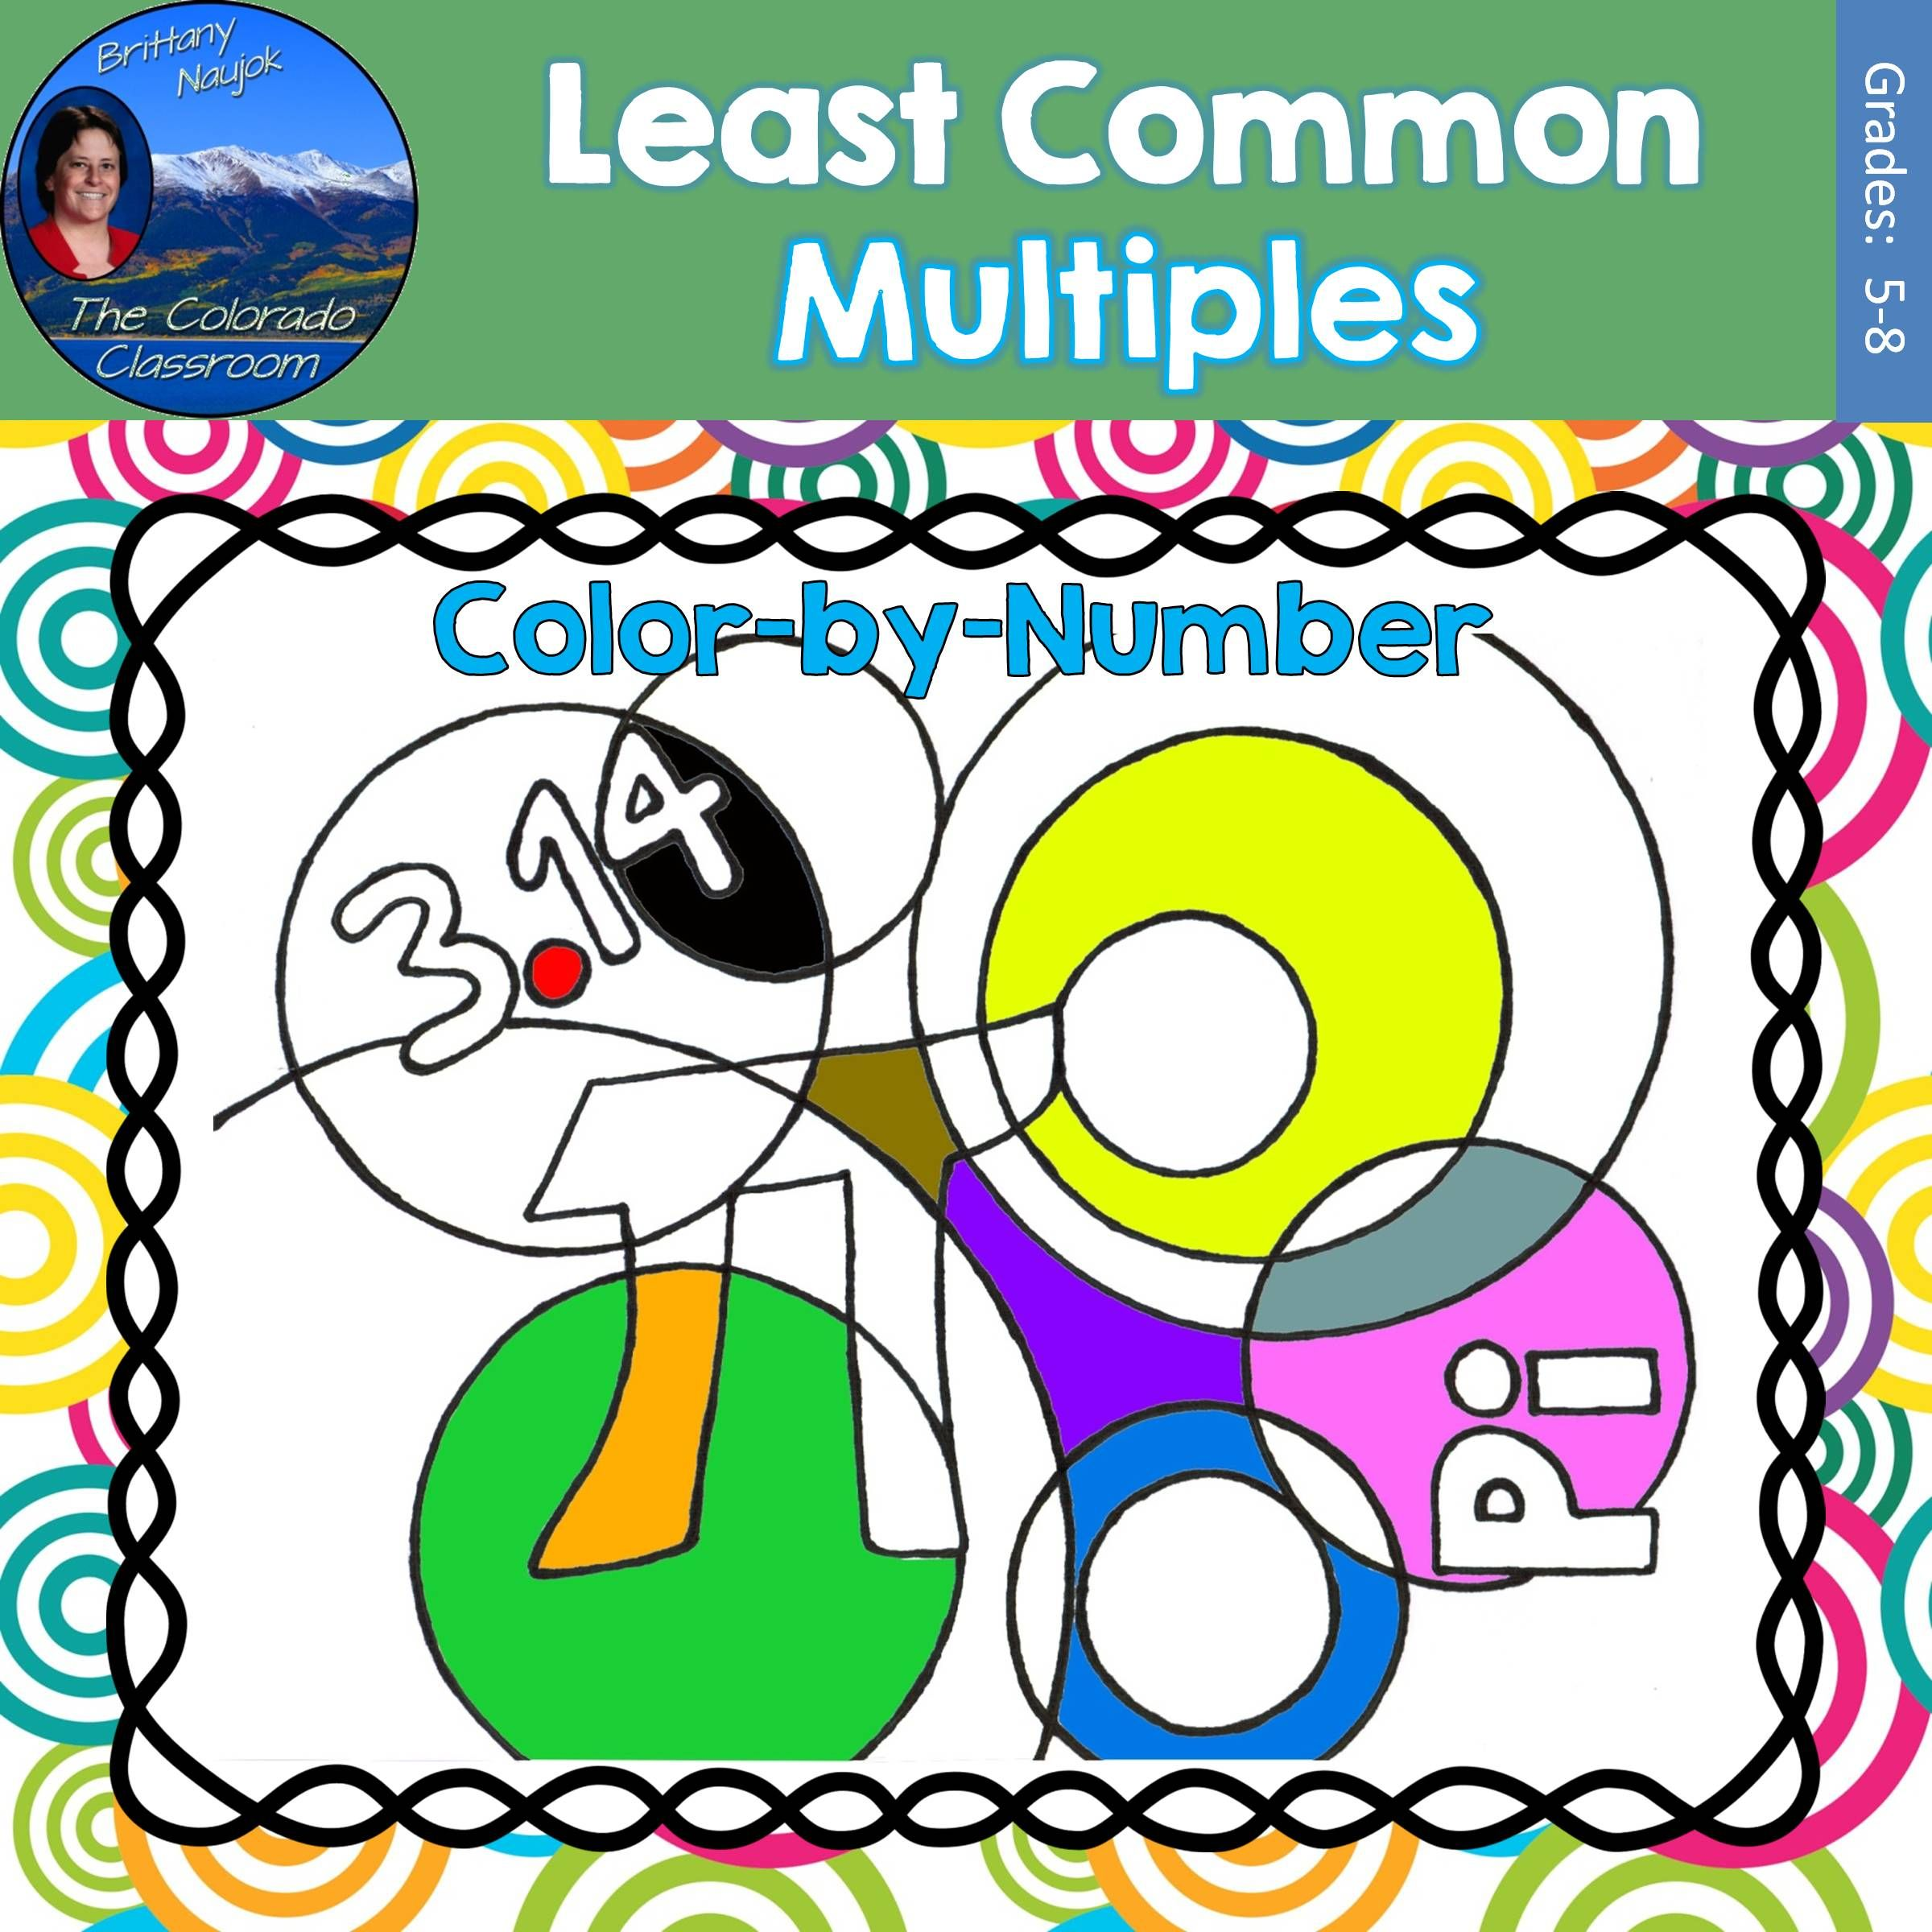 Least Common Multiple Lcm Math Practice Pi Day Color By